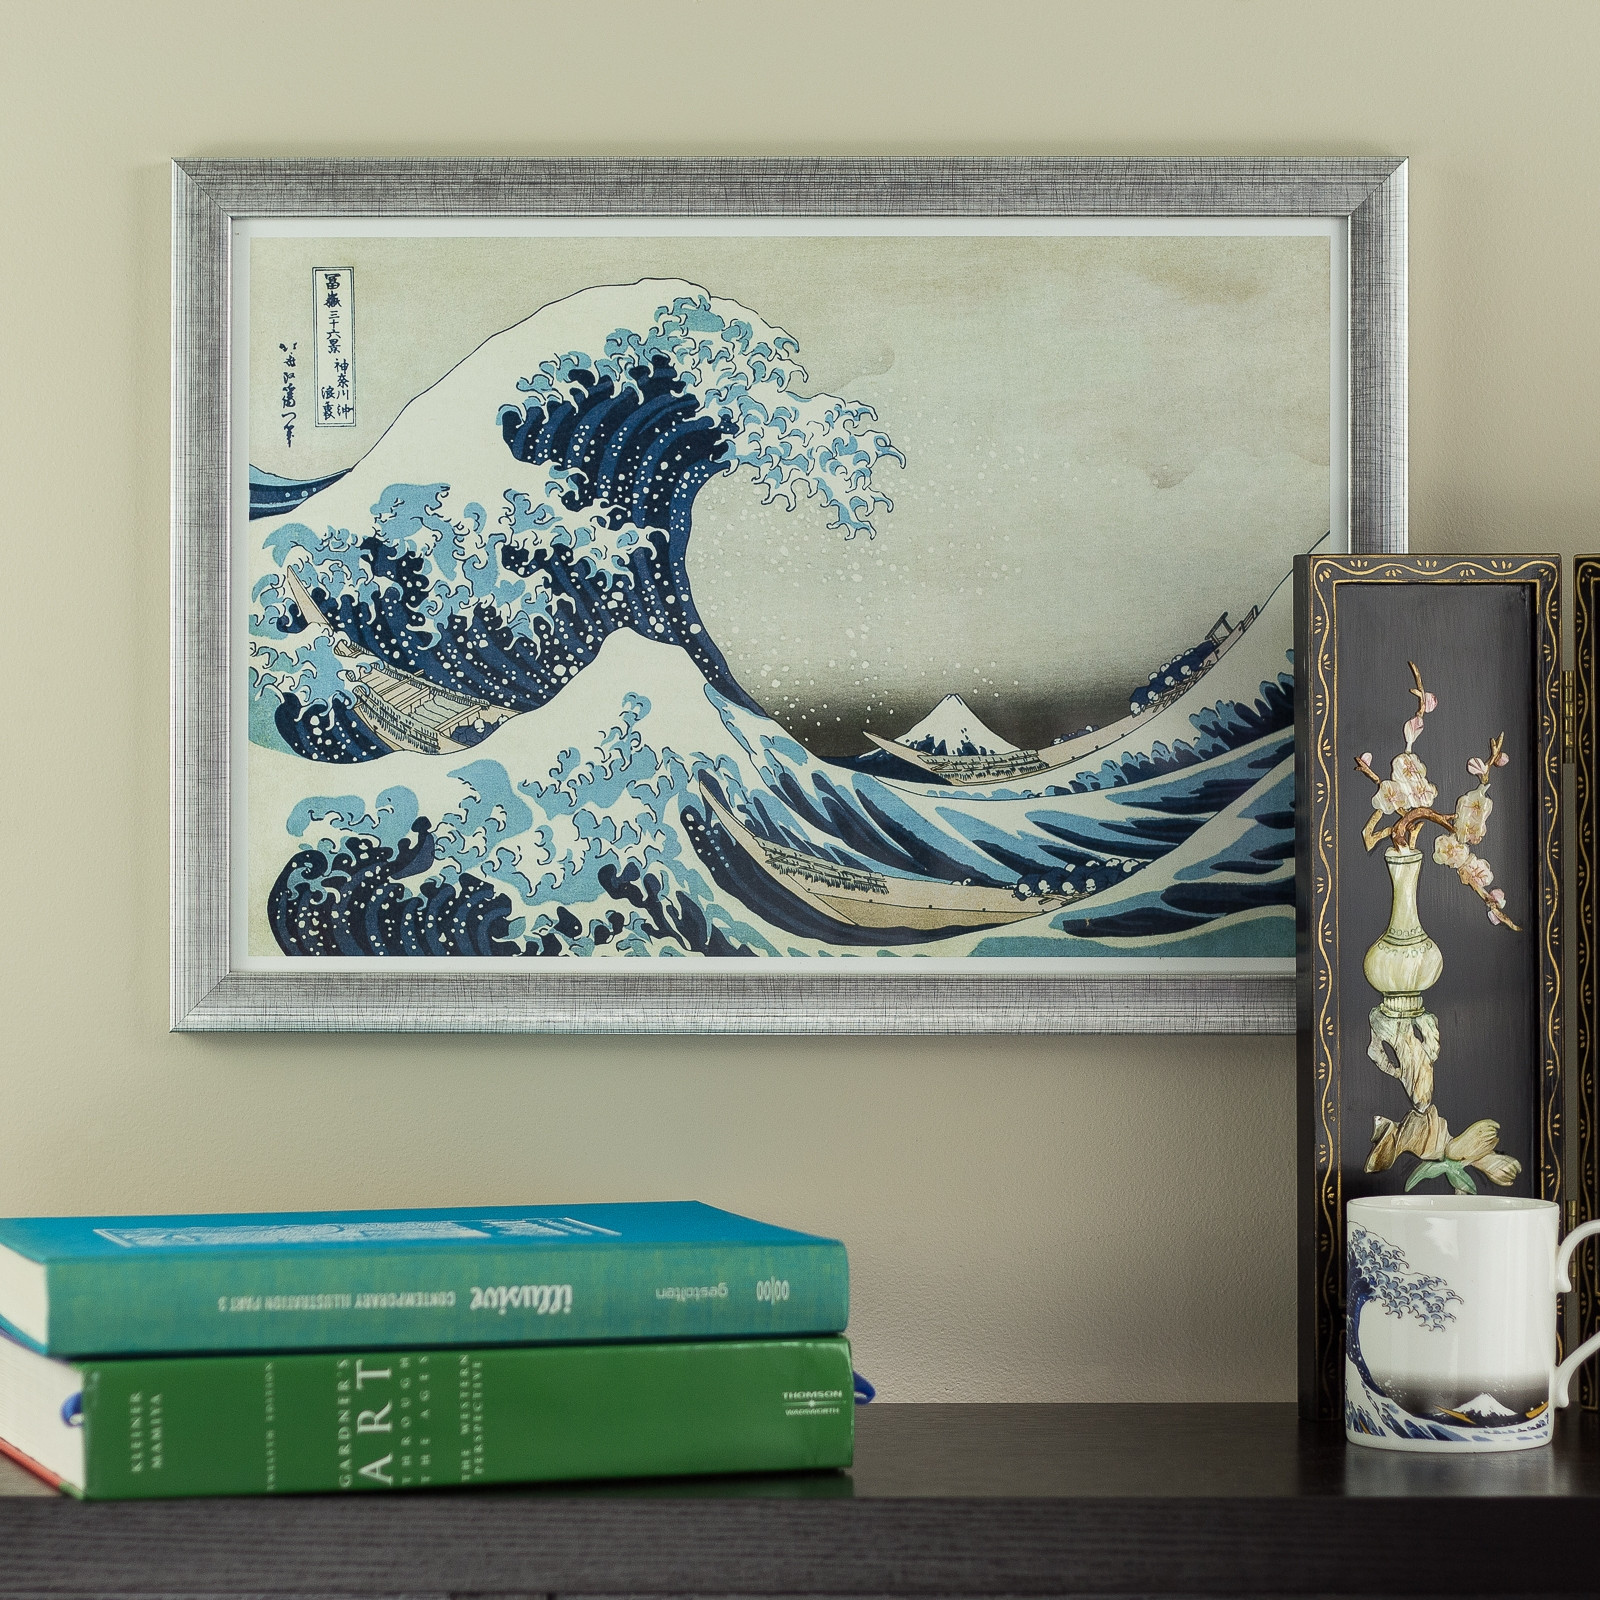 Best ideas about Asian Wall Art . Save or Pin The Great Wave off Kanagawa 13x19 Framed Asian Wall Art Now.